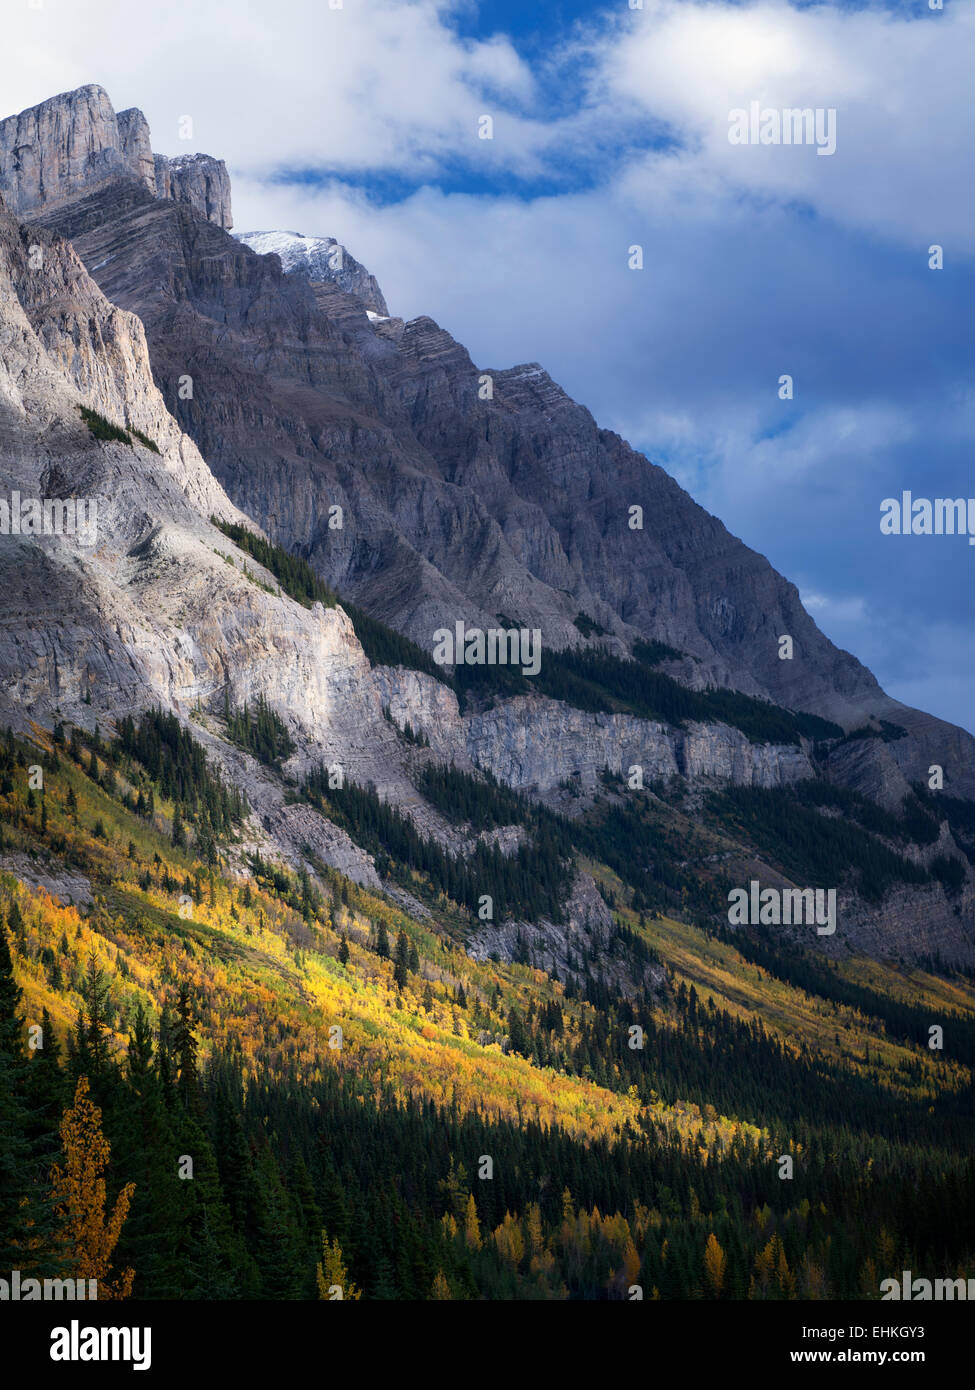 Mountainside with fall colored aspen trees. Banff National Park, Alberta, Canada - Stock Image